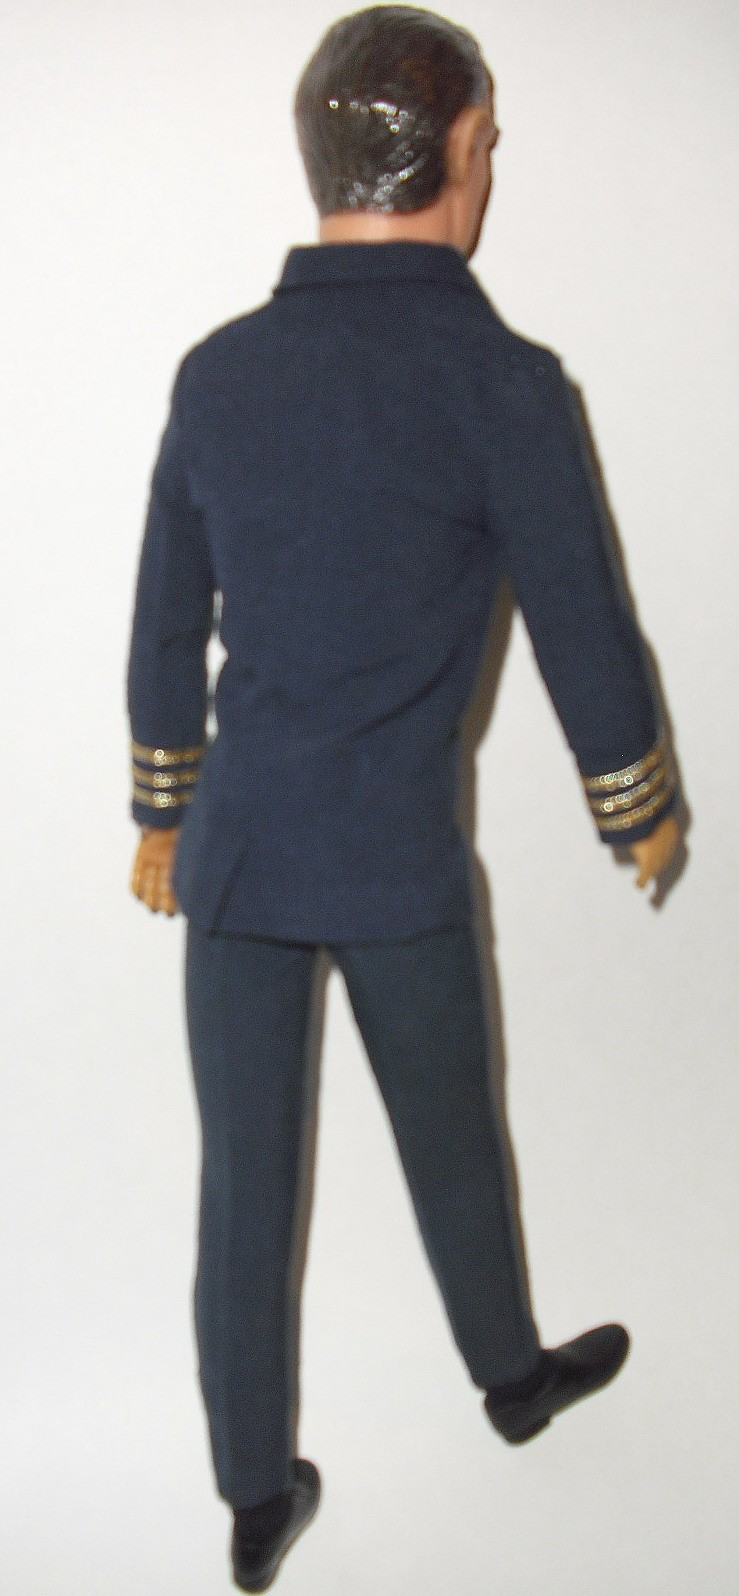 Rare James Bond figure